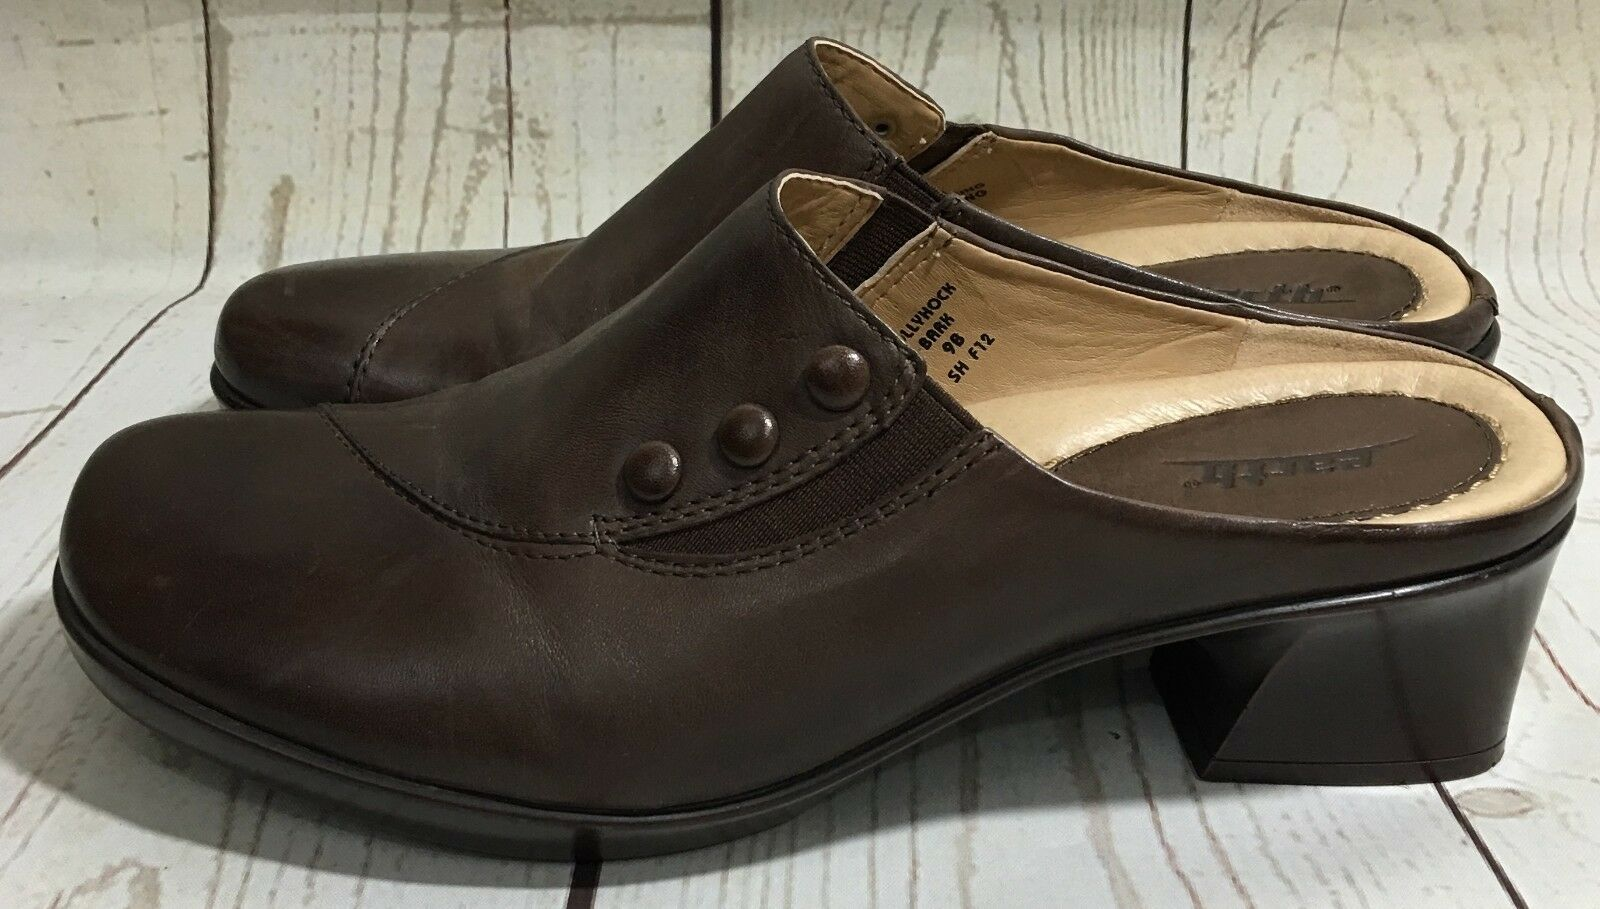 9e36748ac4ba7 Earth Hollyhock Bark Brown Leather Mules Heels Slip-On shoes Size 9 ...